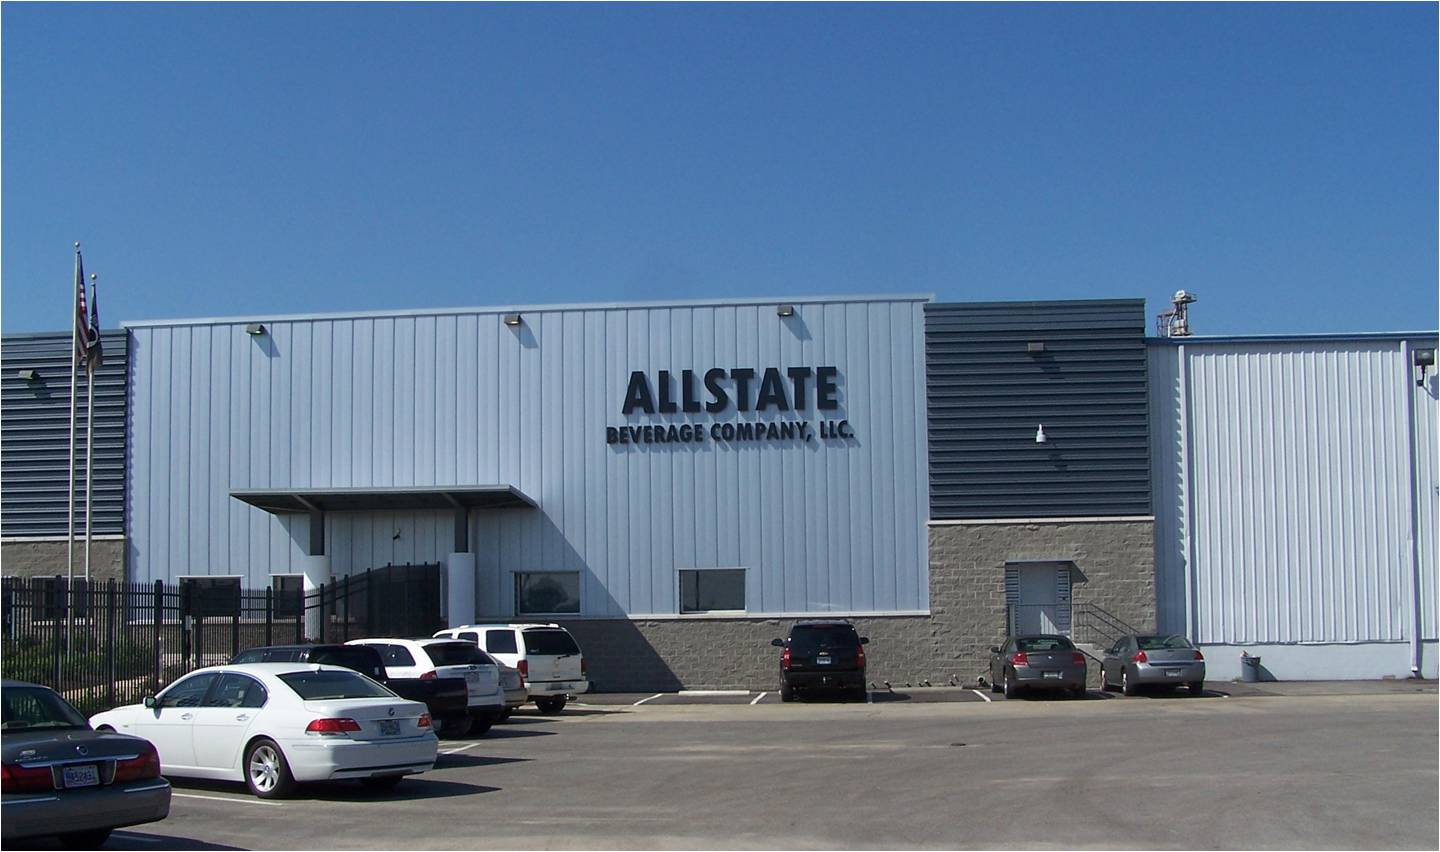 exterior of allstate beverage company